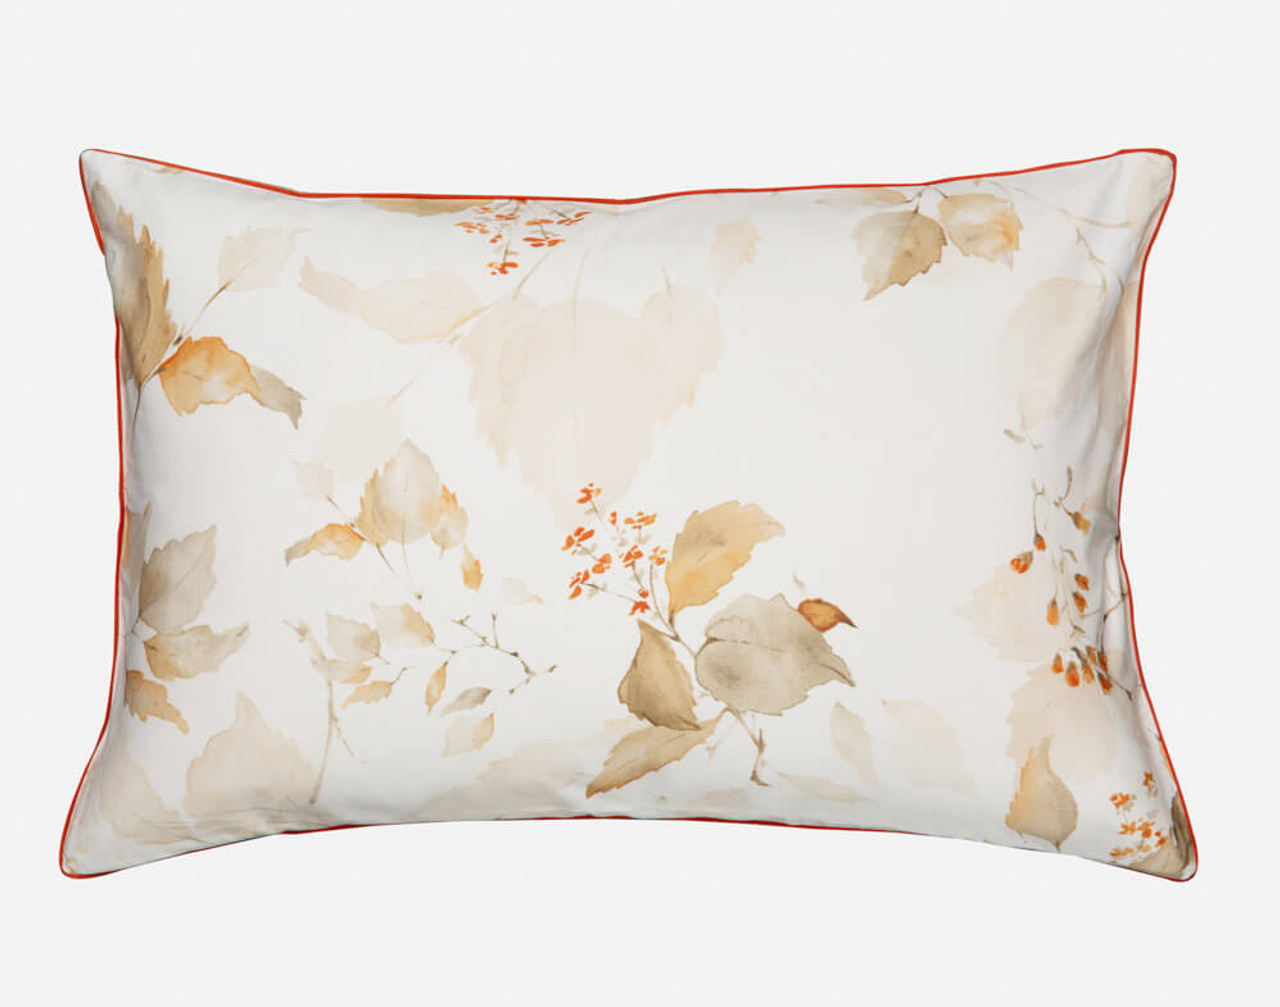 Woodhaven pillow sham front